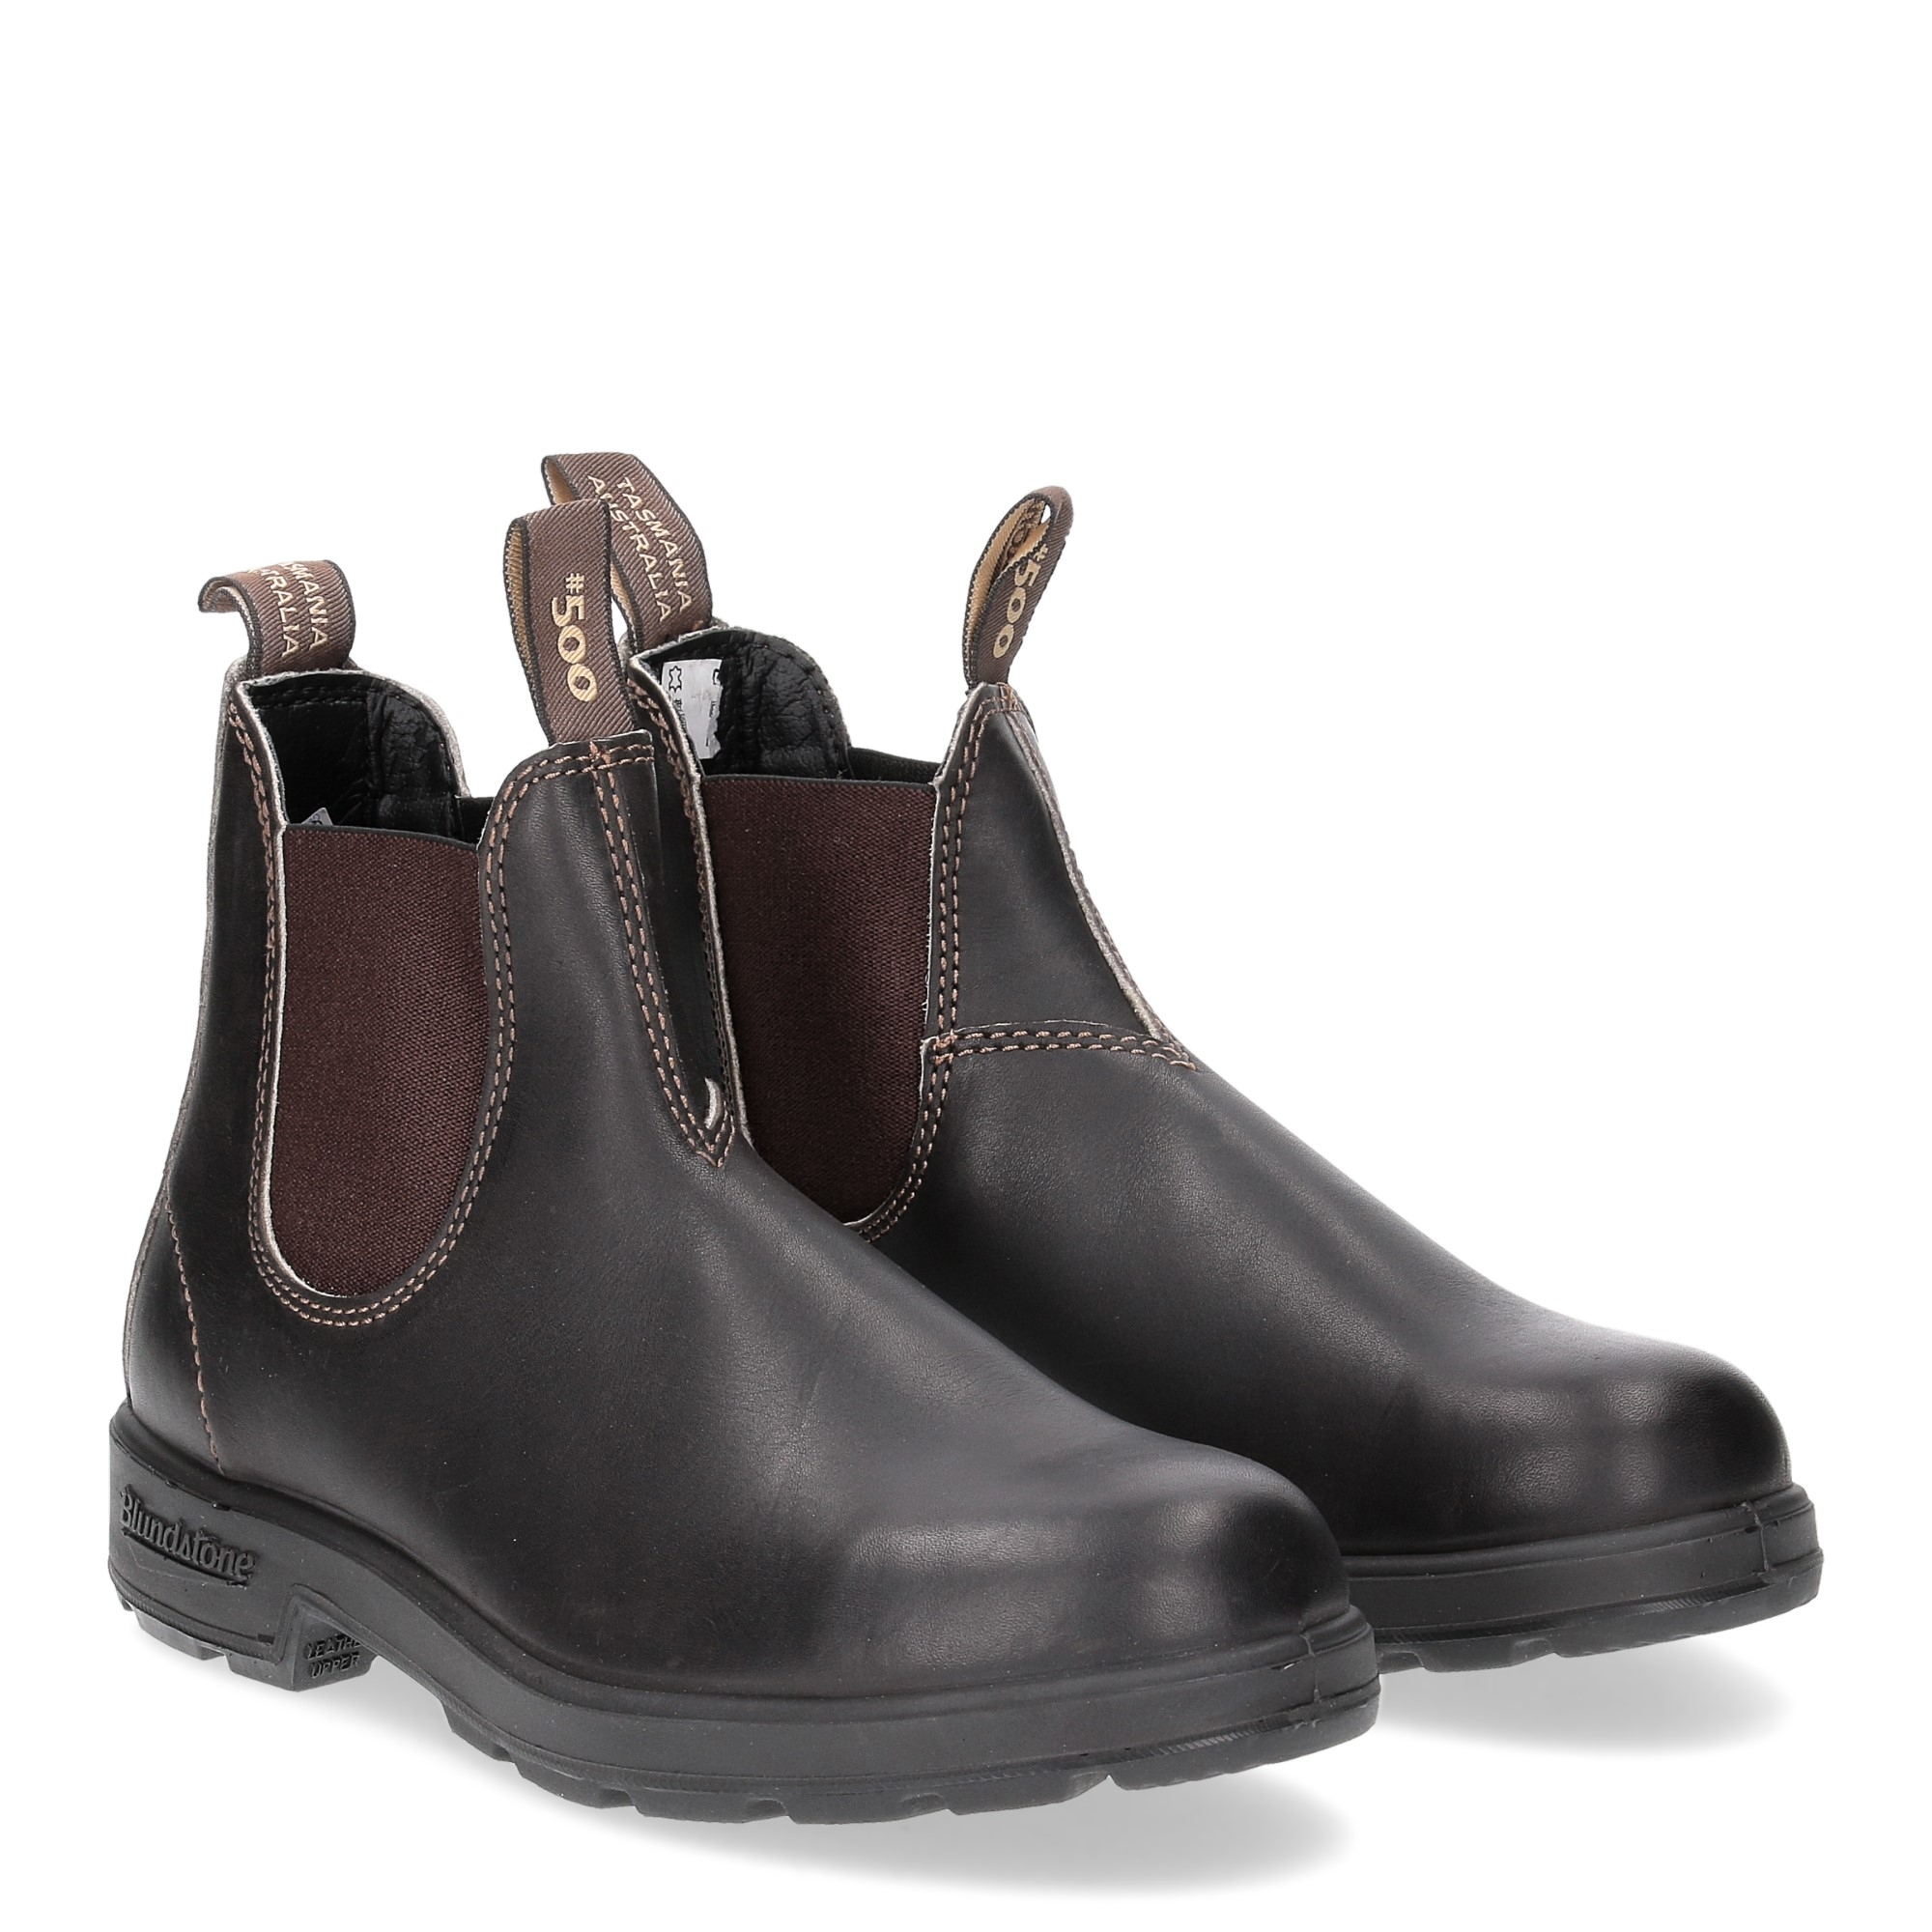 Blundstone 500